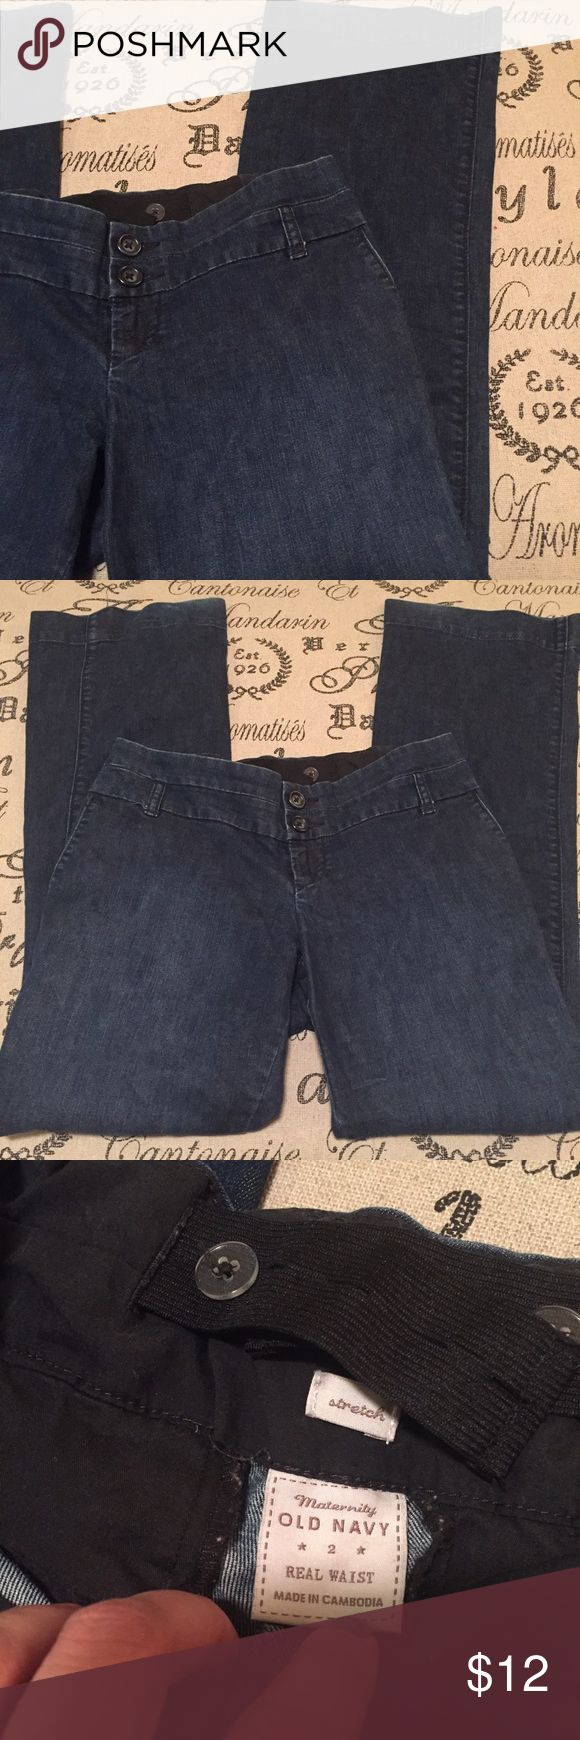 """Maternity jeans size 2 Old Navy 31"""" inseam Great condition Maternity jeans size 2 Old Navy 31"""" inseam. Old Navy Jeans"""